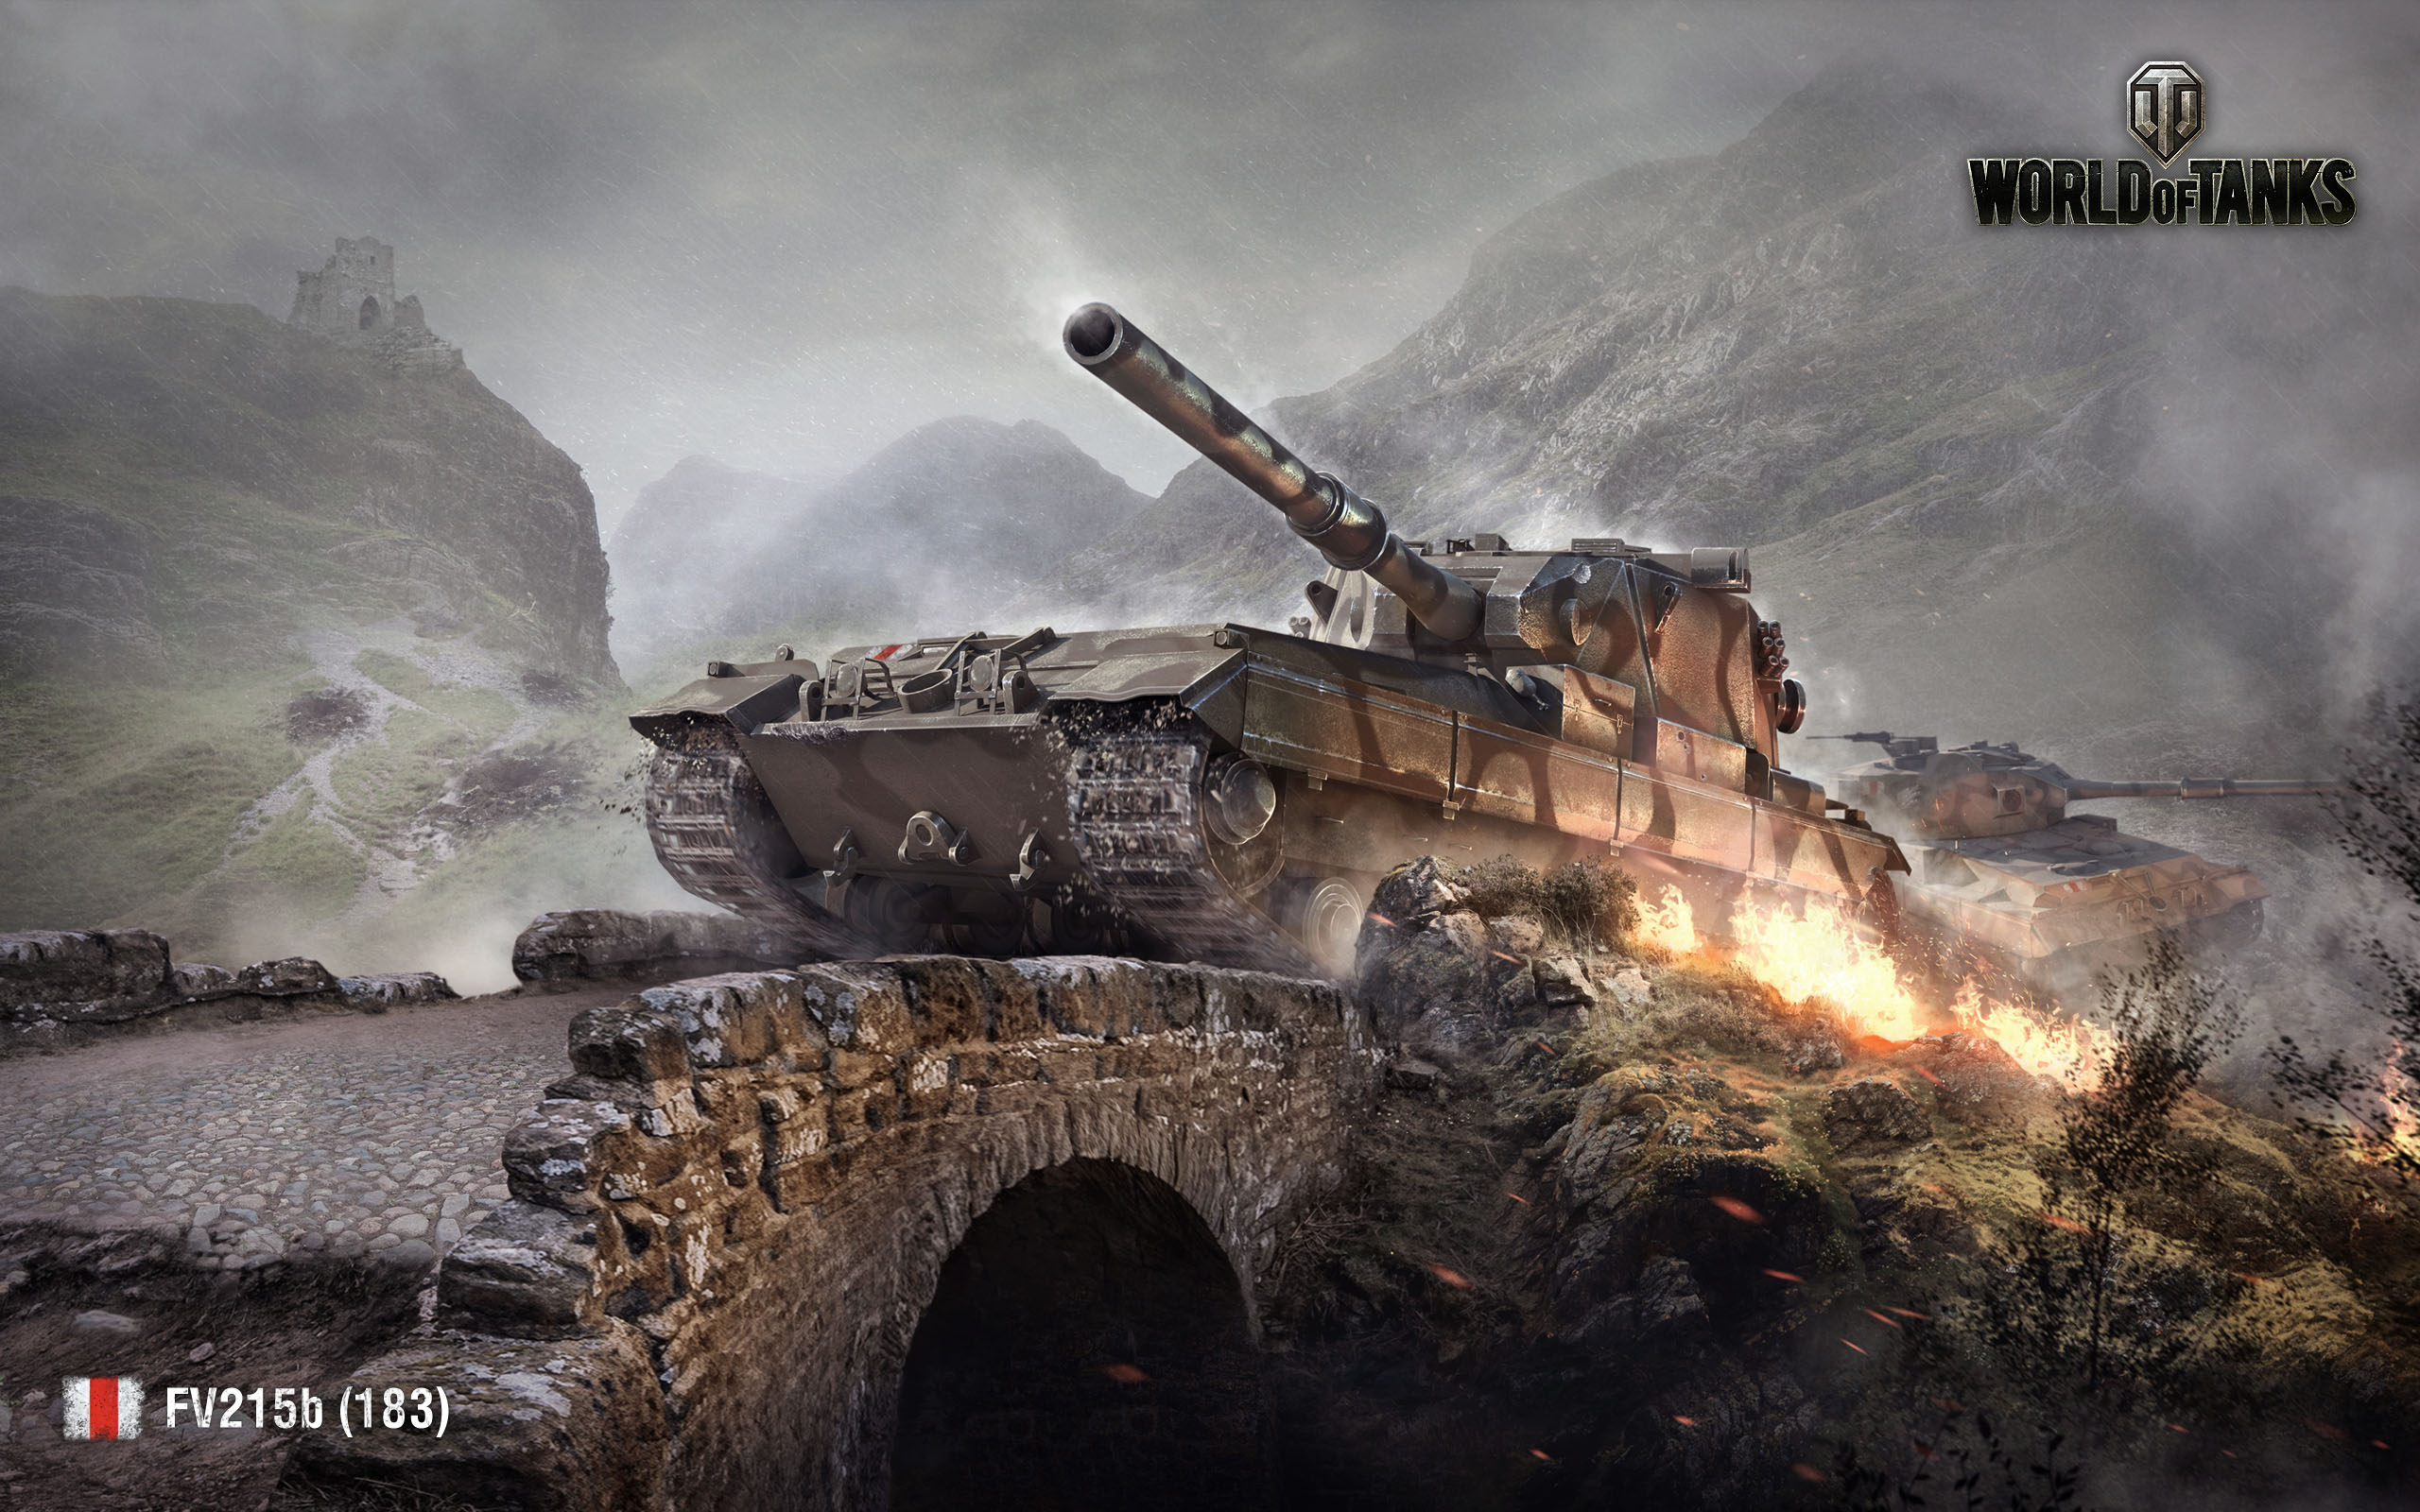 fv215b 183 world of tanks wallpapers | wallpapers hd